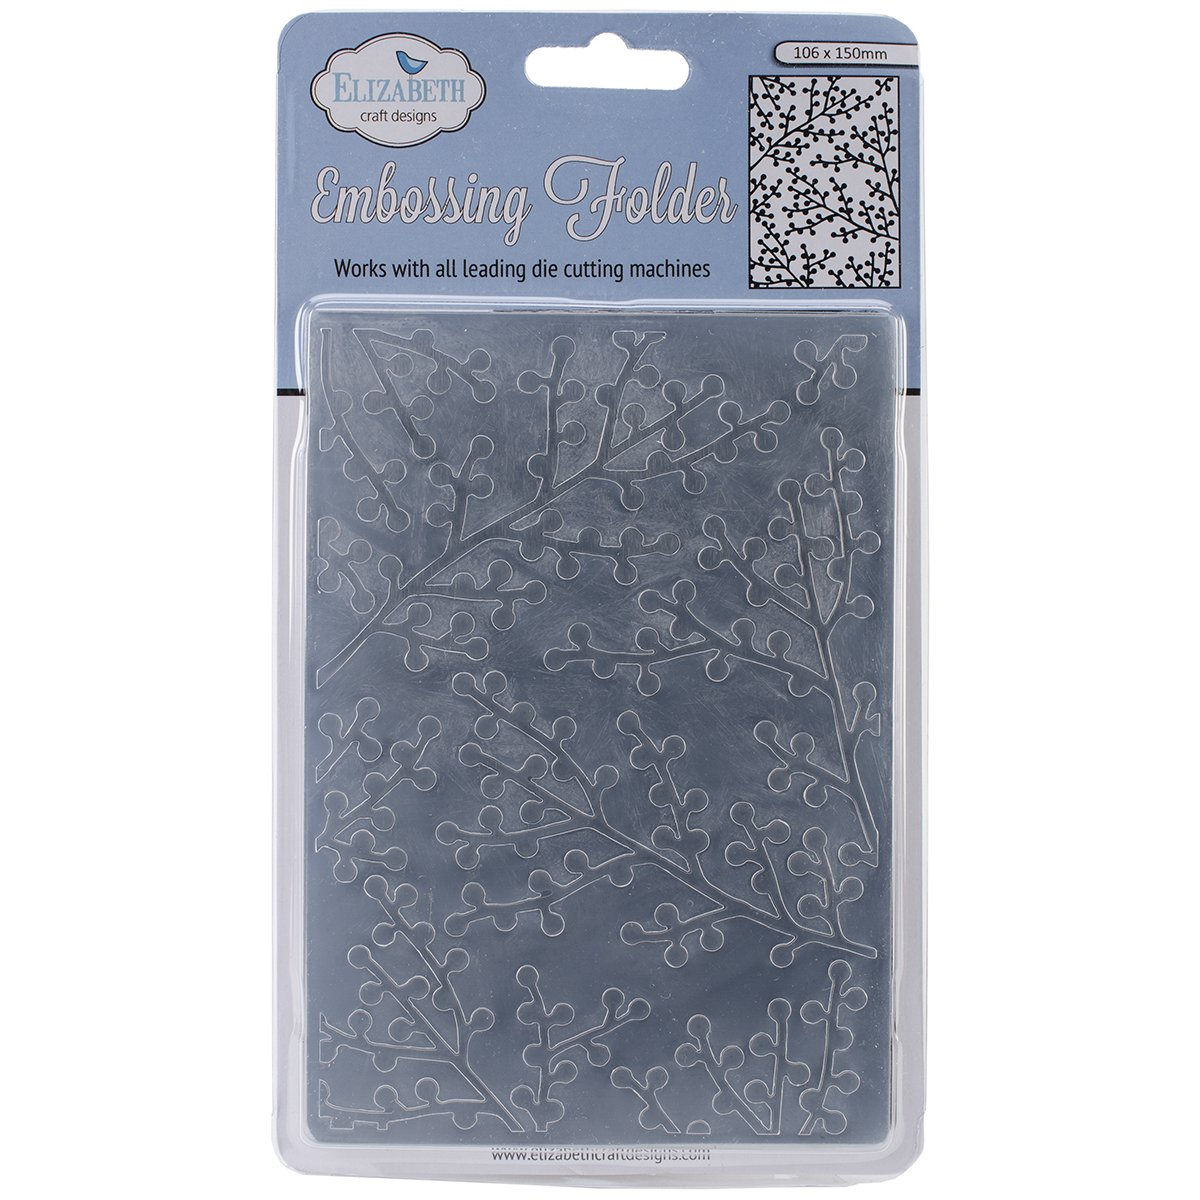 Elizabeth Craft Designs Embossing Folder, 4 by 6-Inch, Berry Branch ECEM-103